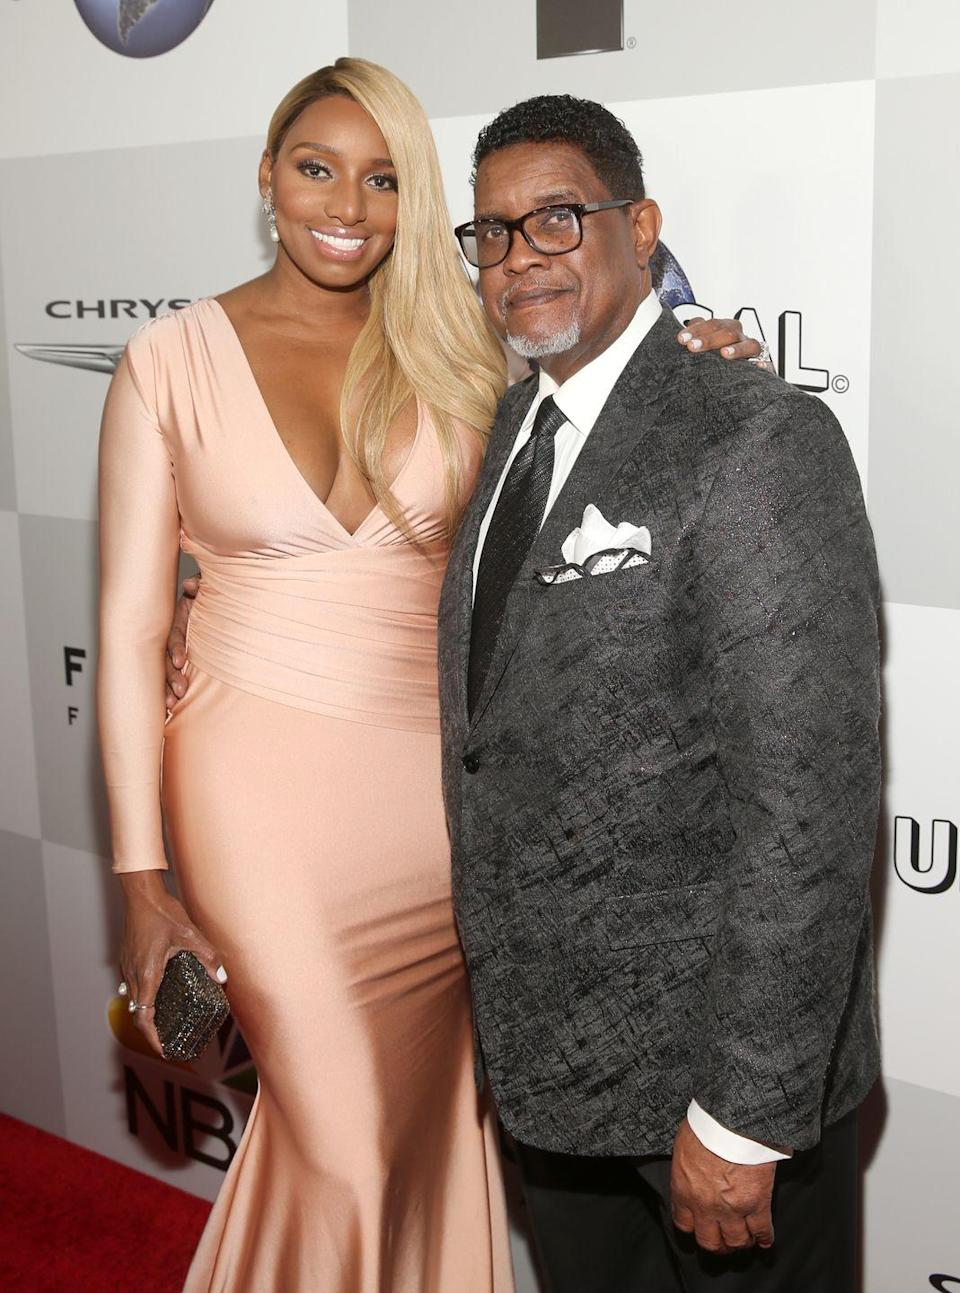 """<p>Former <em>Real Housewives of Atlanta </em>star NeNe Leakes married Gregg Leakes long before her reality TV fame. The couple was first married in 1997, but three years after she joined the reality show, they <a href=""""https://www.bravotv.com/the-daily-dish/why-nene-leakes-filed-for-divorce-from-gregg-leakes#:~:text=NeNe%20Leakes%20and%20her%20husband,Dream%20of%20NeNe%3A%20The%20Wedding.&text=%22I%20have%20been%20with%20Gregg,or%20so%2C%22%20she%20shared."""" rel=""""nofollow noopener"""" target=""""_blank"""" data-ylk=""""slk:filed for divorce"""" class=""""link rapid-noclick-resp"""">filed for divorce</a>. As viewers know, the Leakes reunited and remarried in 2013. </p>"""